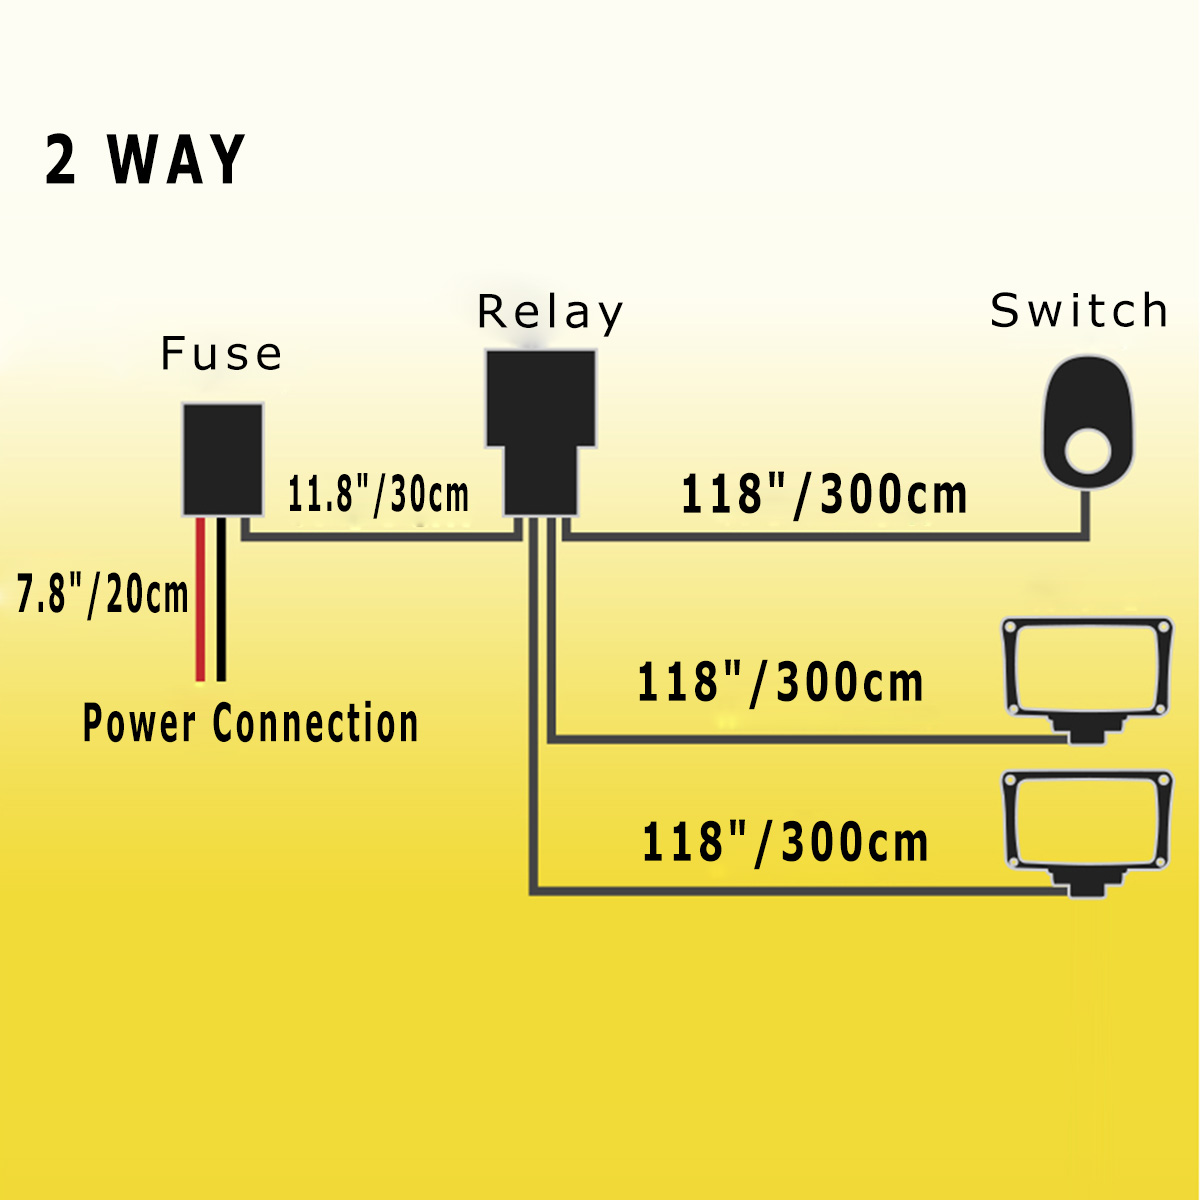 Wiring Harness Kit Fuse Switch Relay Offroad Car Light Bar Dual Led Diagram Without With Twin Lights